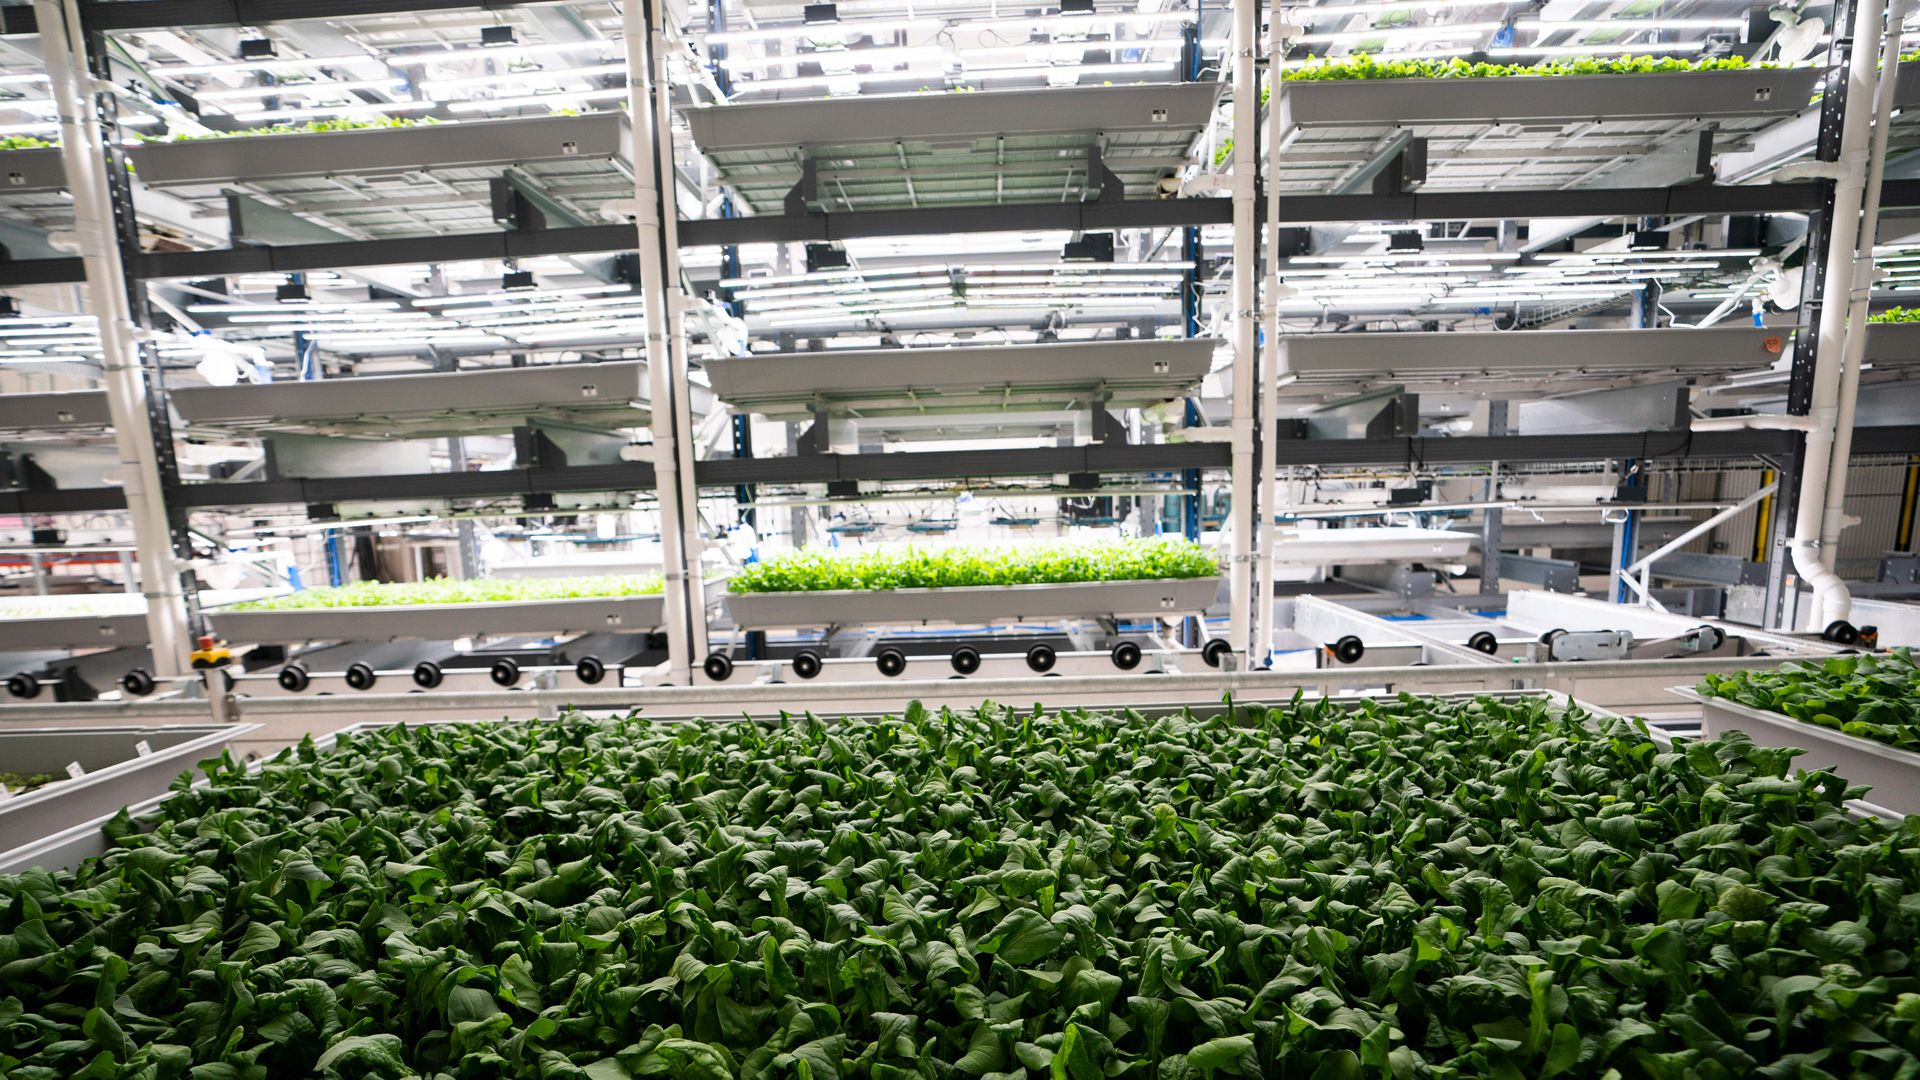 understanding vertical farming and how it works